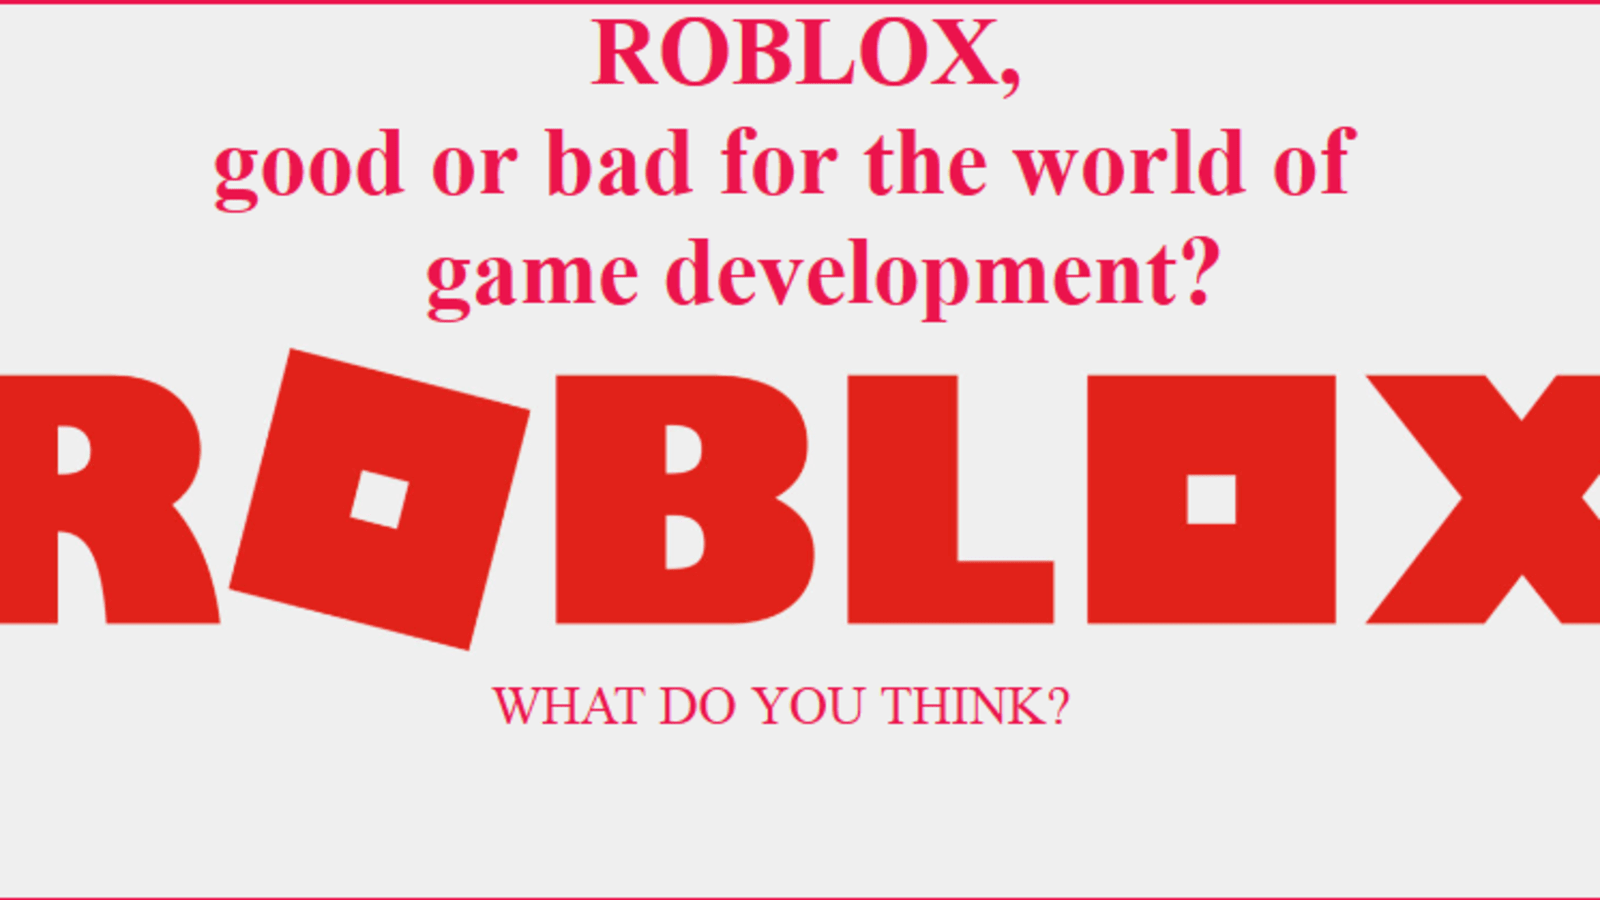 Roblox Game Developer Tycoon Roblox Good Or Bad For The World Of Game Development Dev